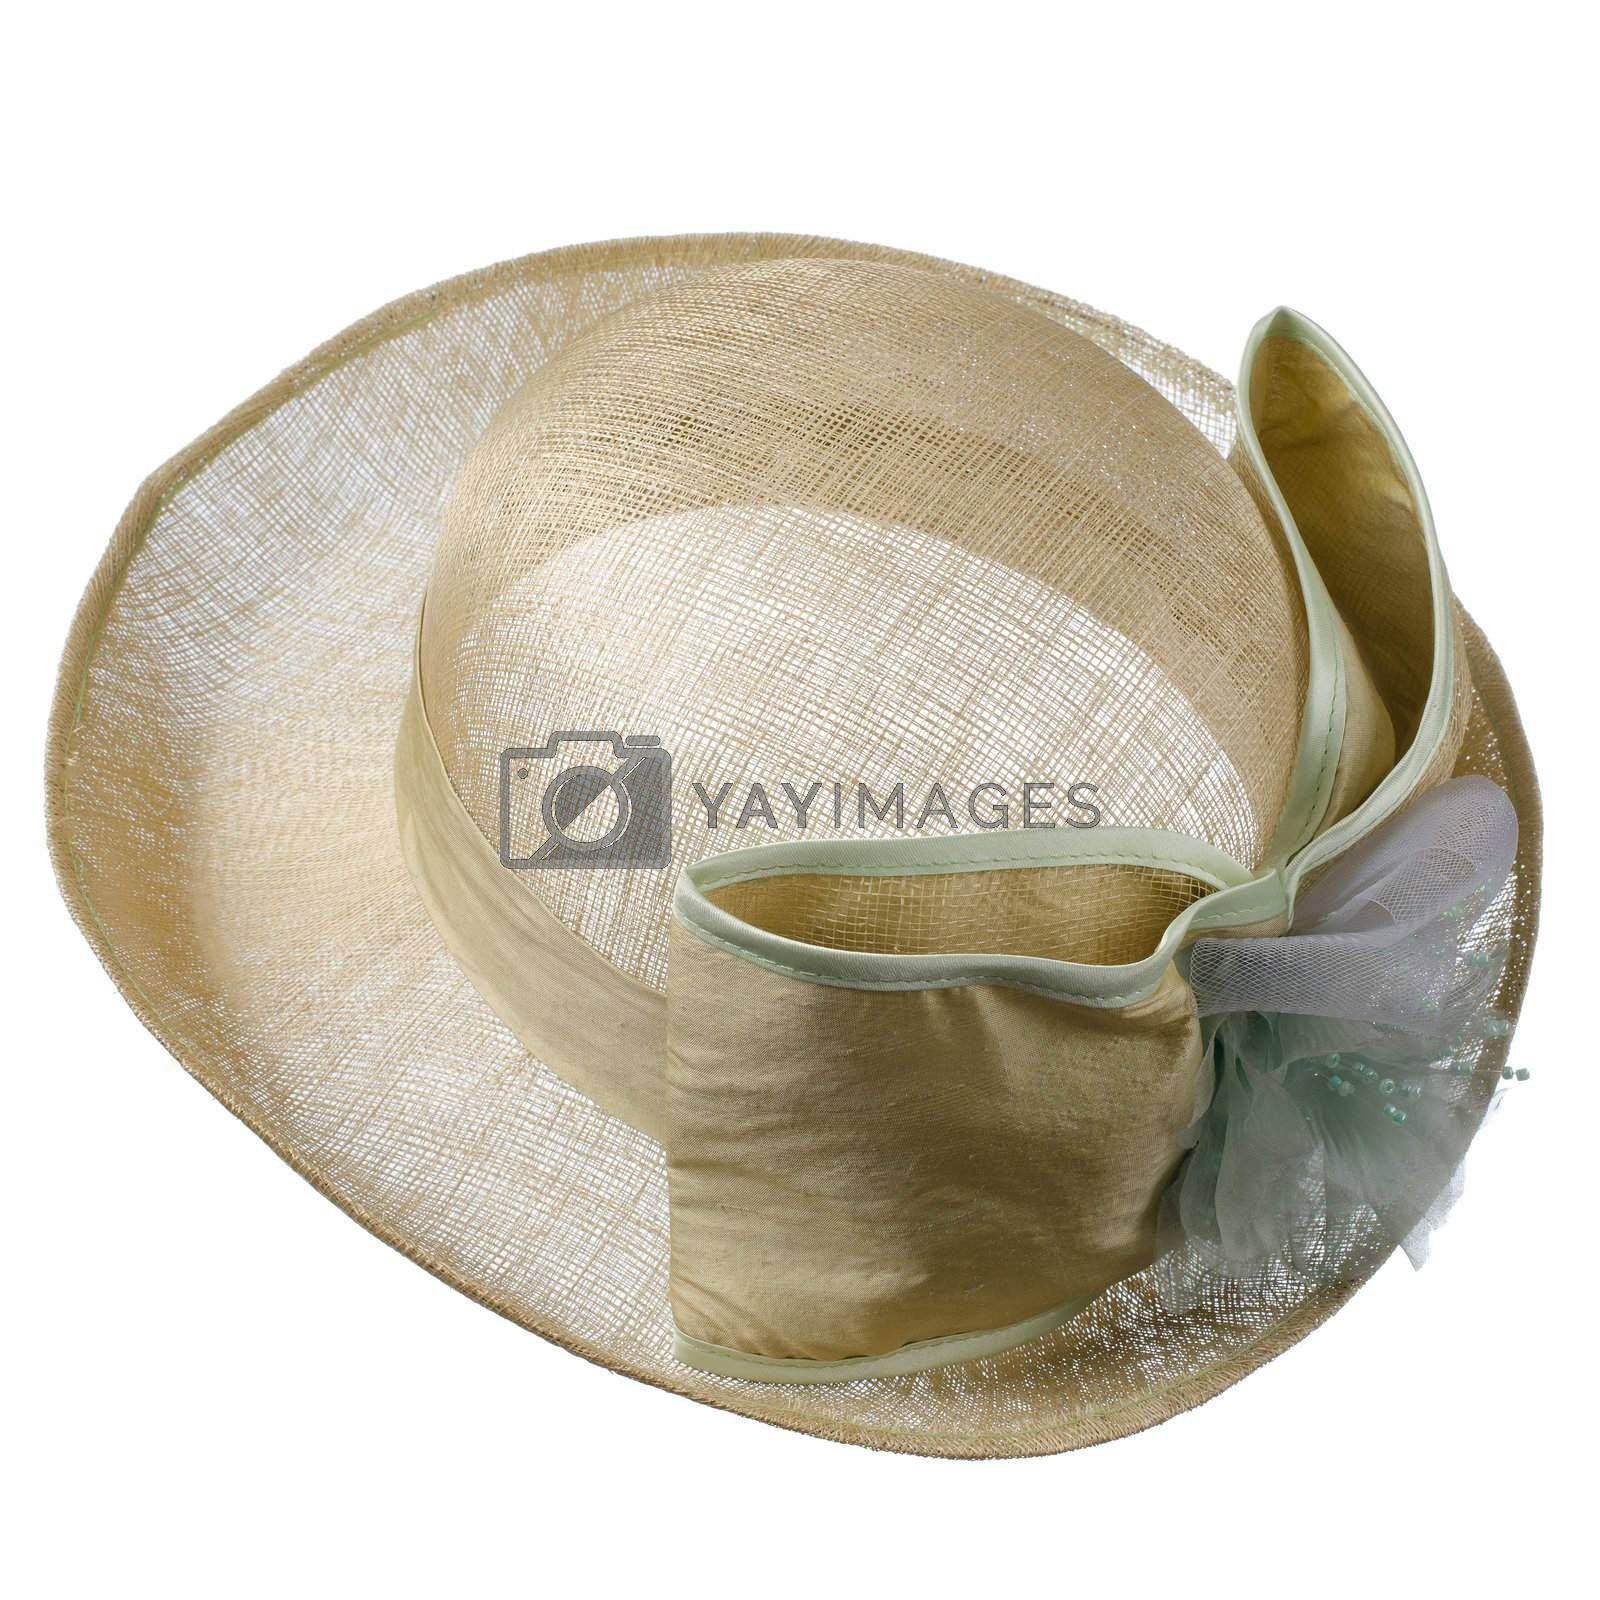 Fashion lady hat isolated on white background.